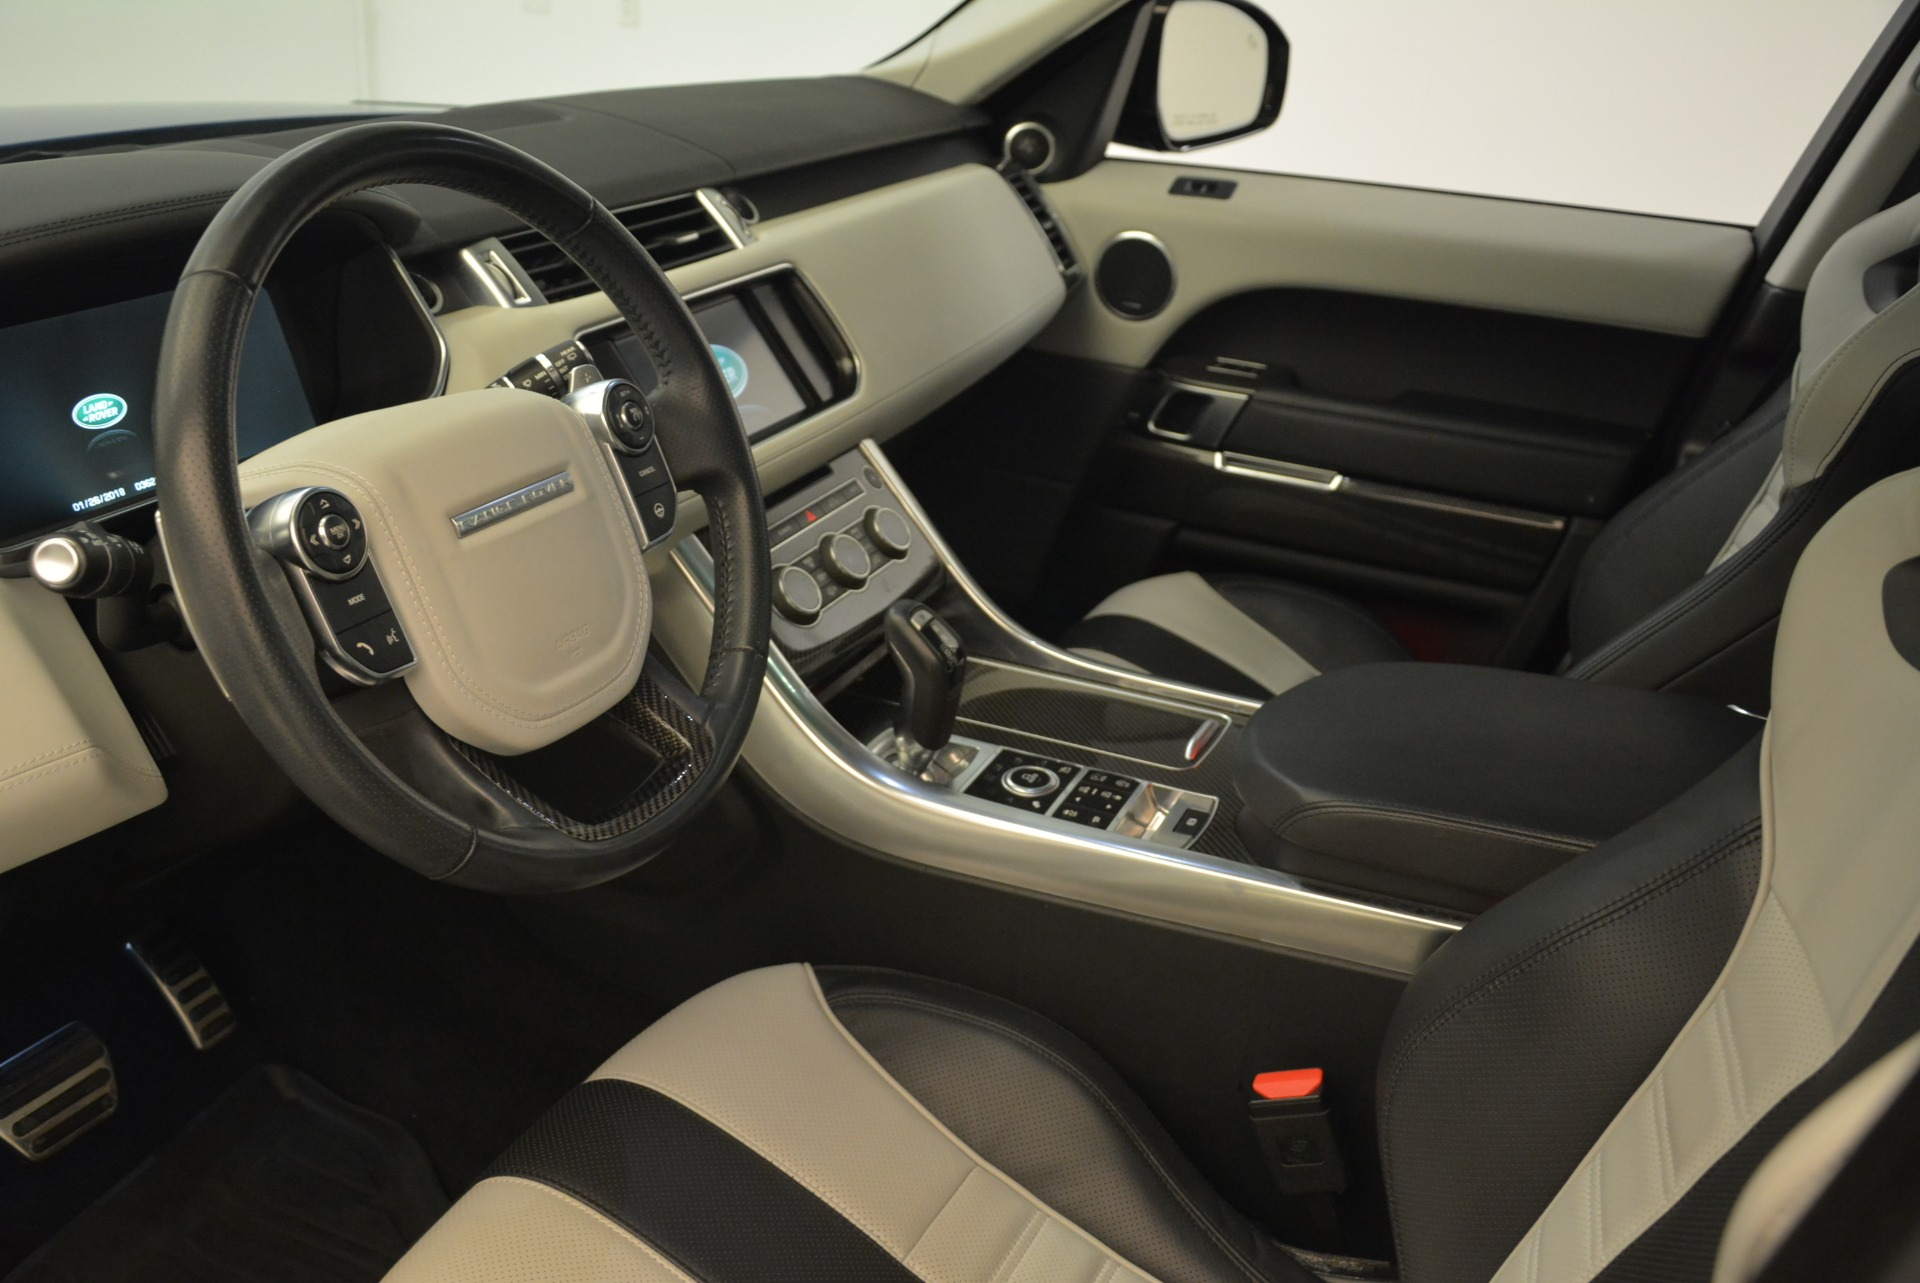 Used 2015 Land Rover Range Rover Sport SVR For Sale In Westport, CT 2046_p15